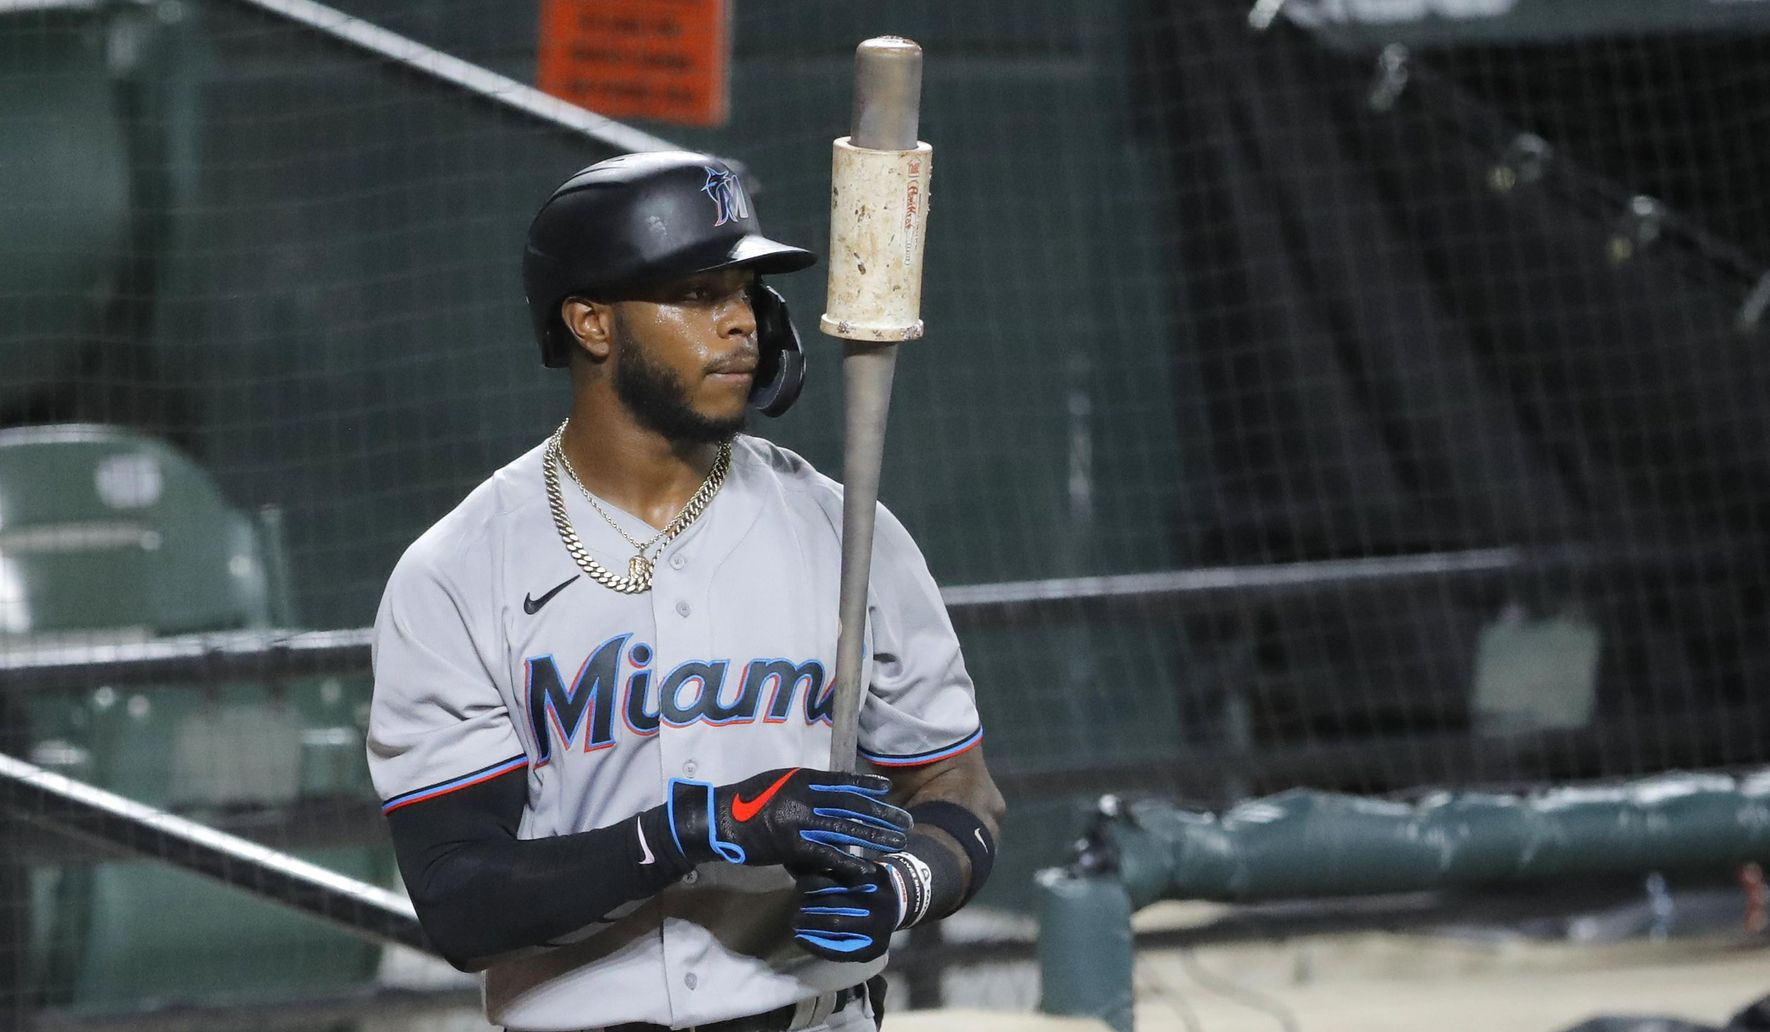 Marlins_prospects_baseball_97079_c0-125-3000-1874_s1770x1032